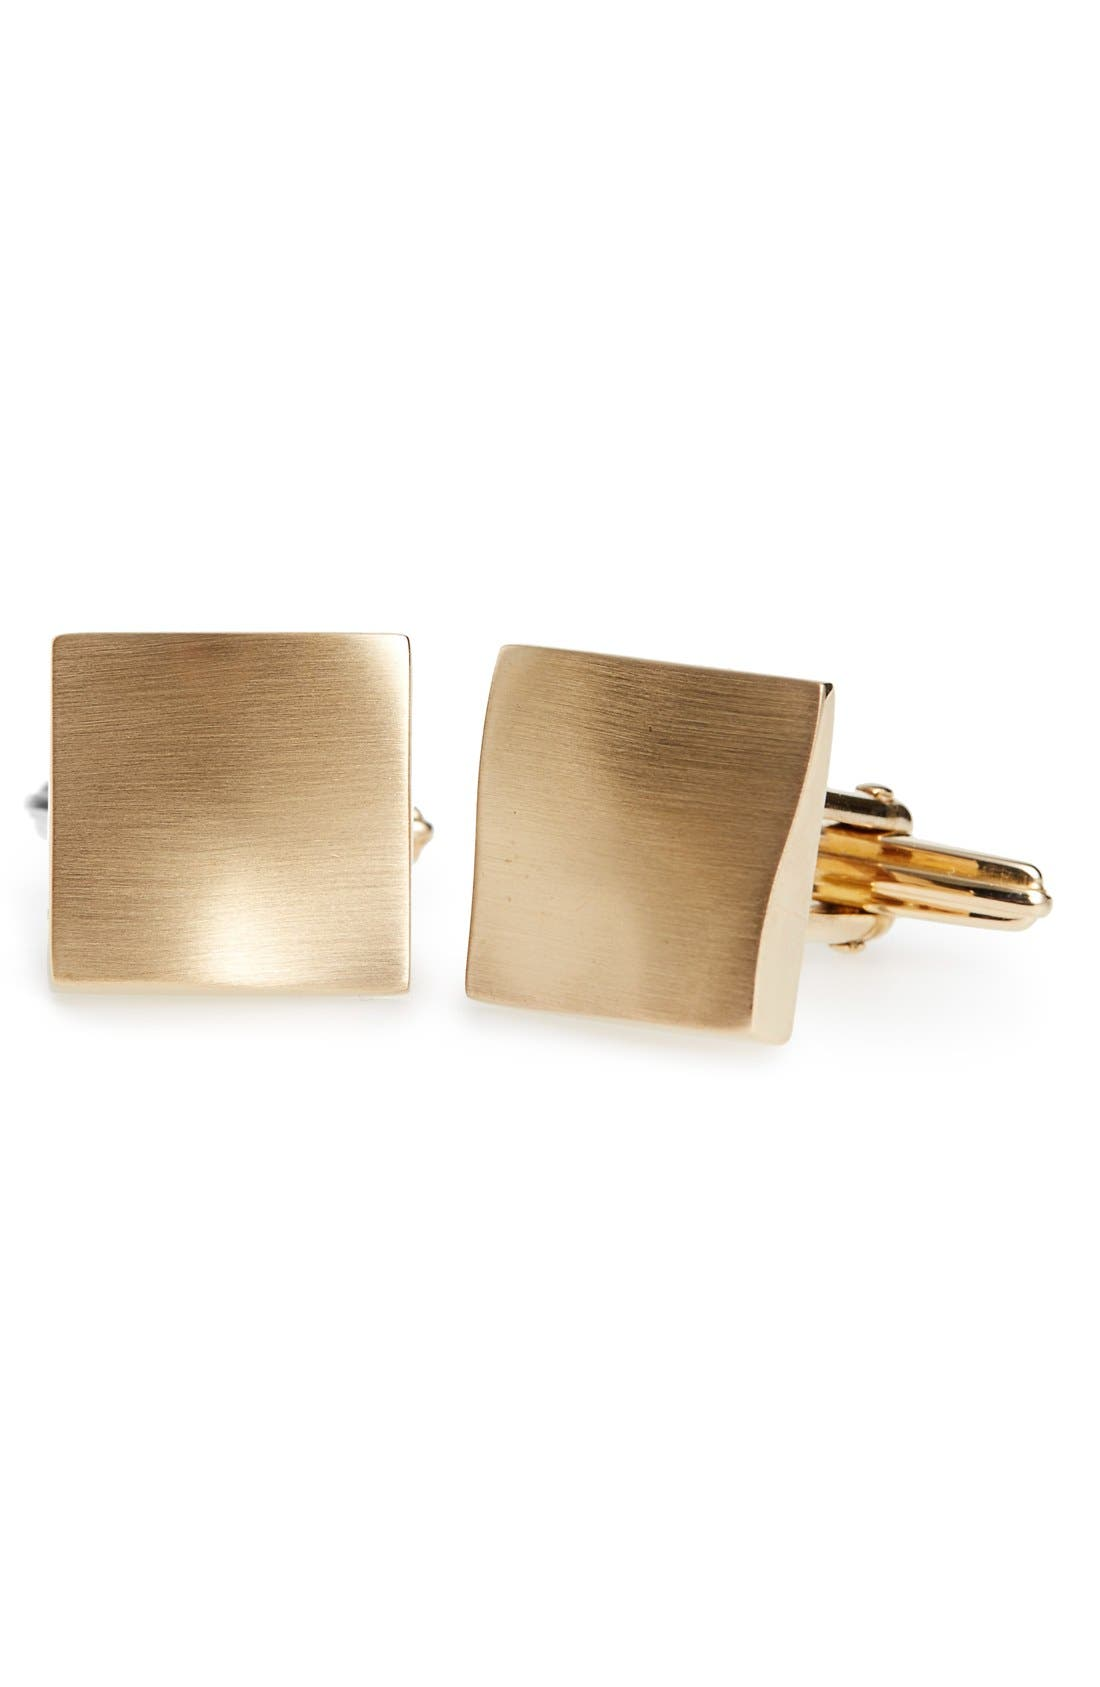 'Twisted Plaque' Square Cuff Links,                             Main thumbnail 3, color,